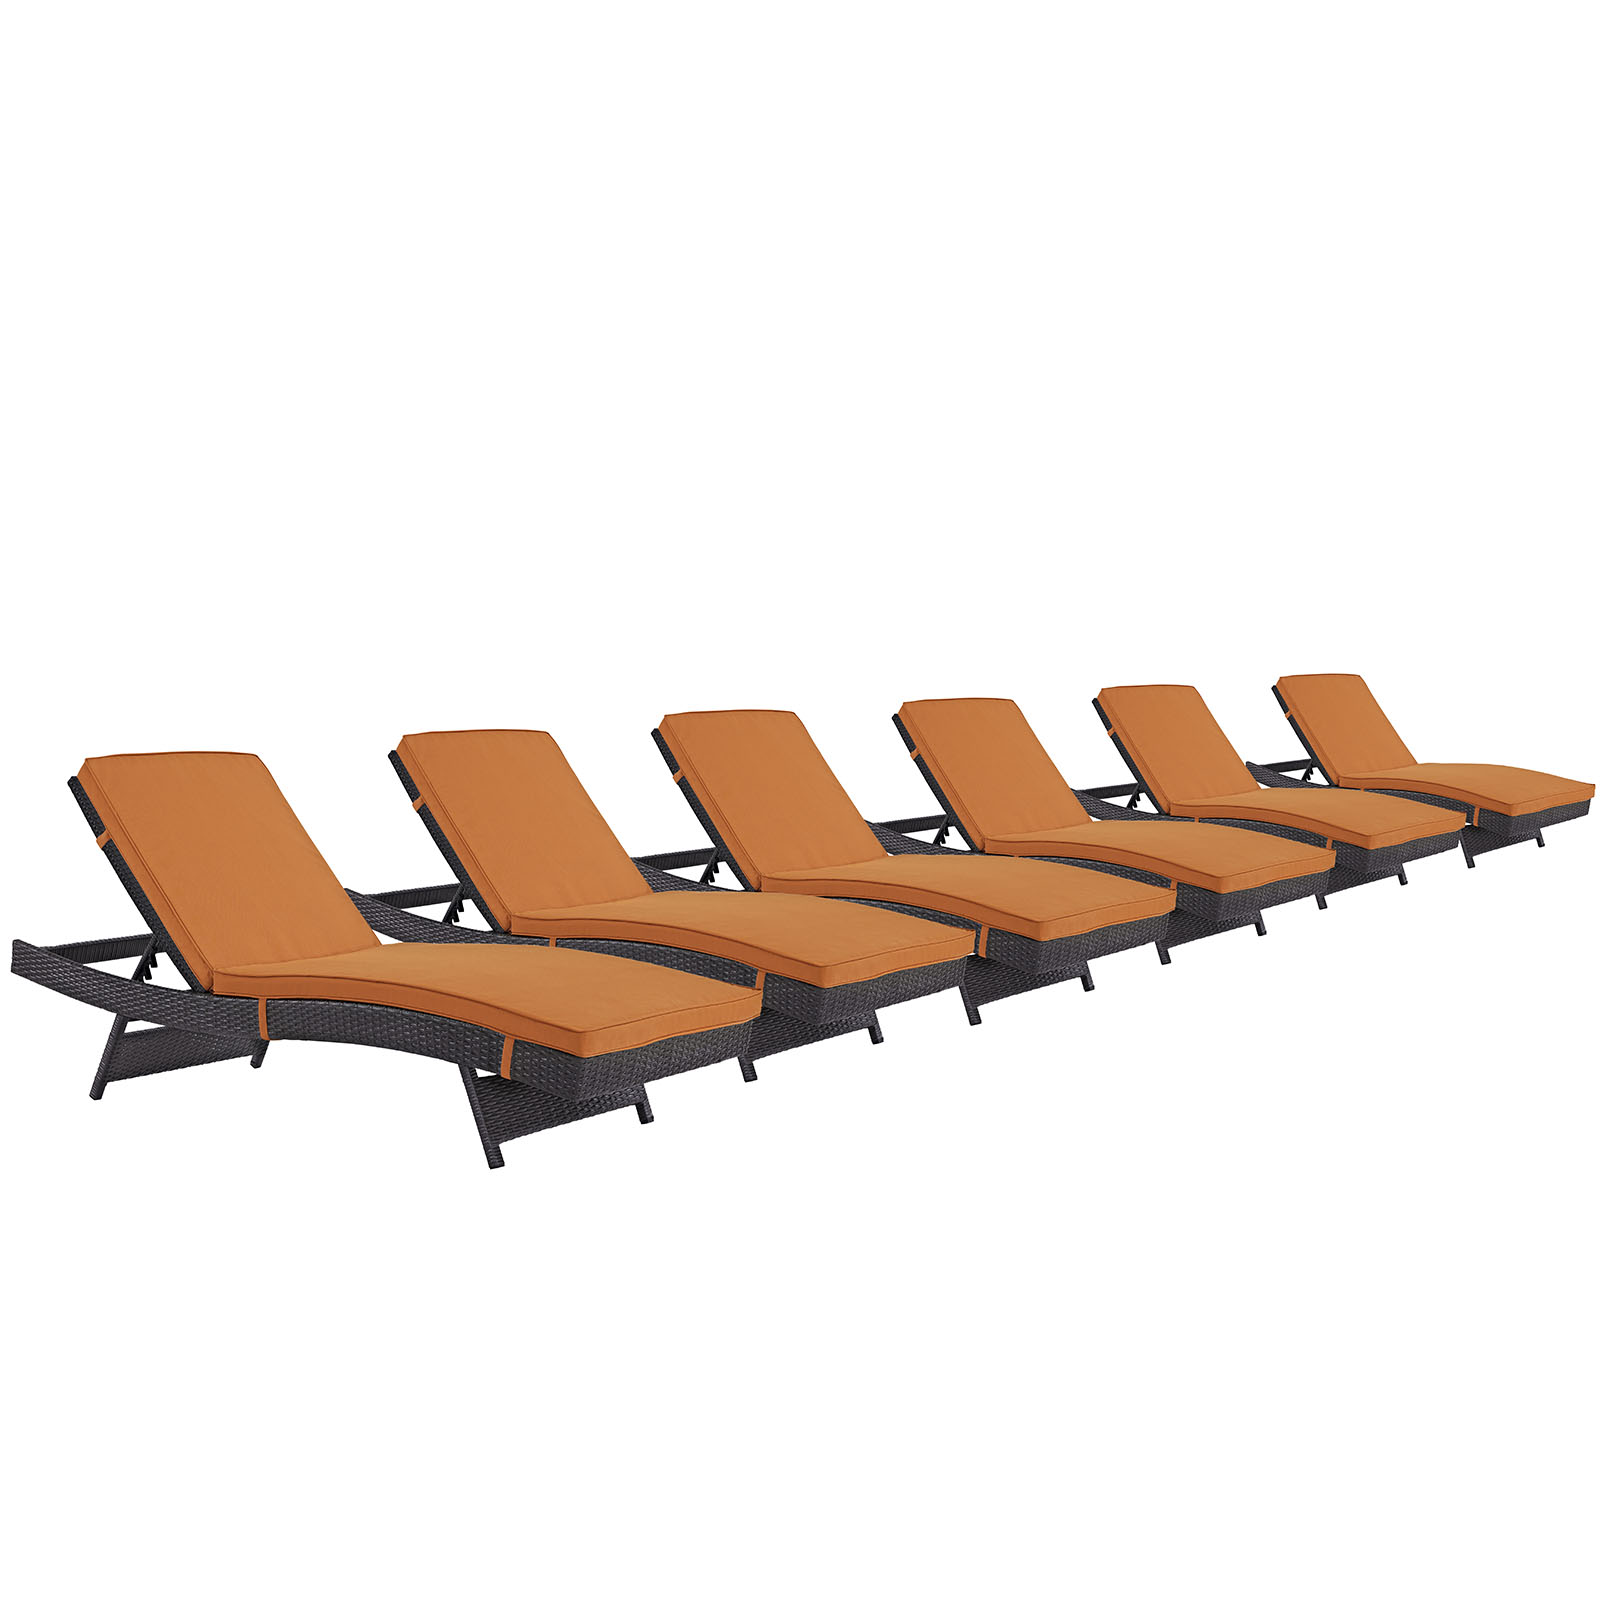 Modern Contemporary Urban Design Outdoor Patio Balcony Chaise Lounge Chair ( Set of 6), Orange, Rattan